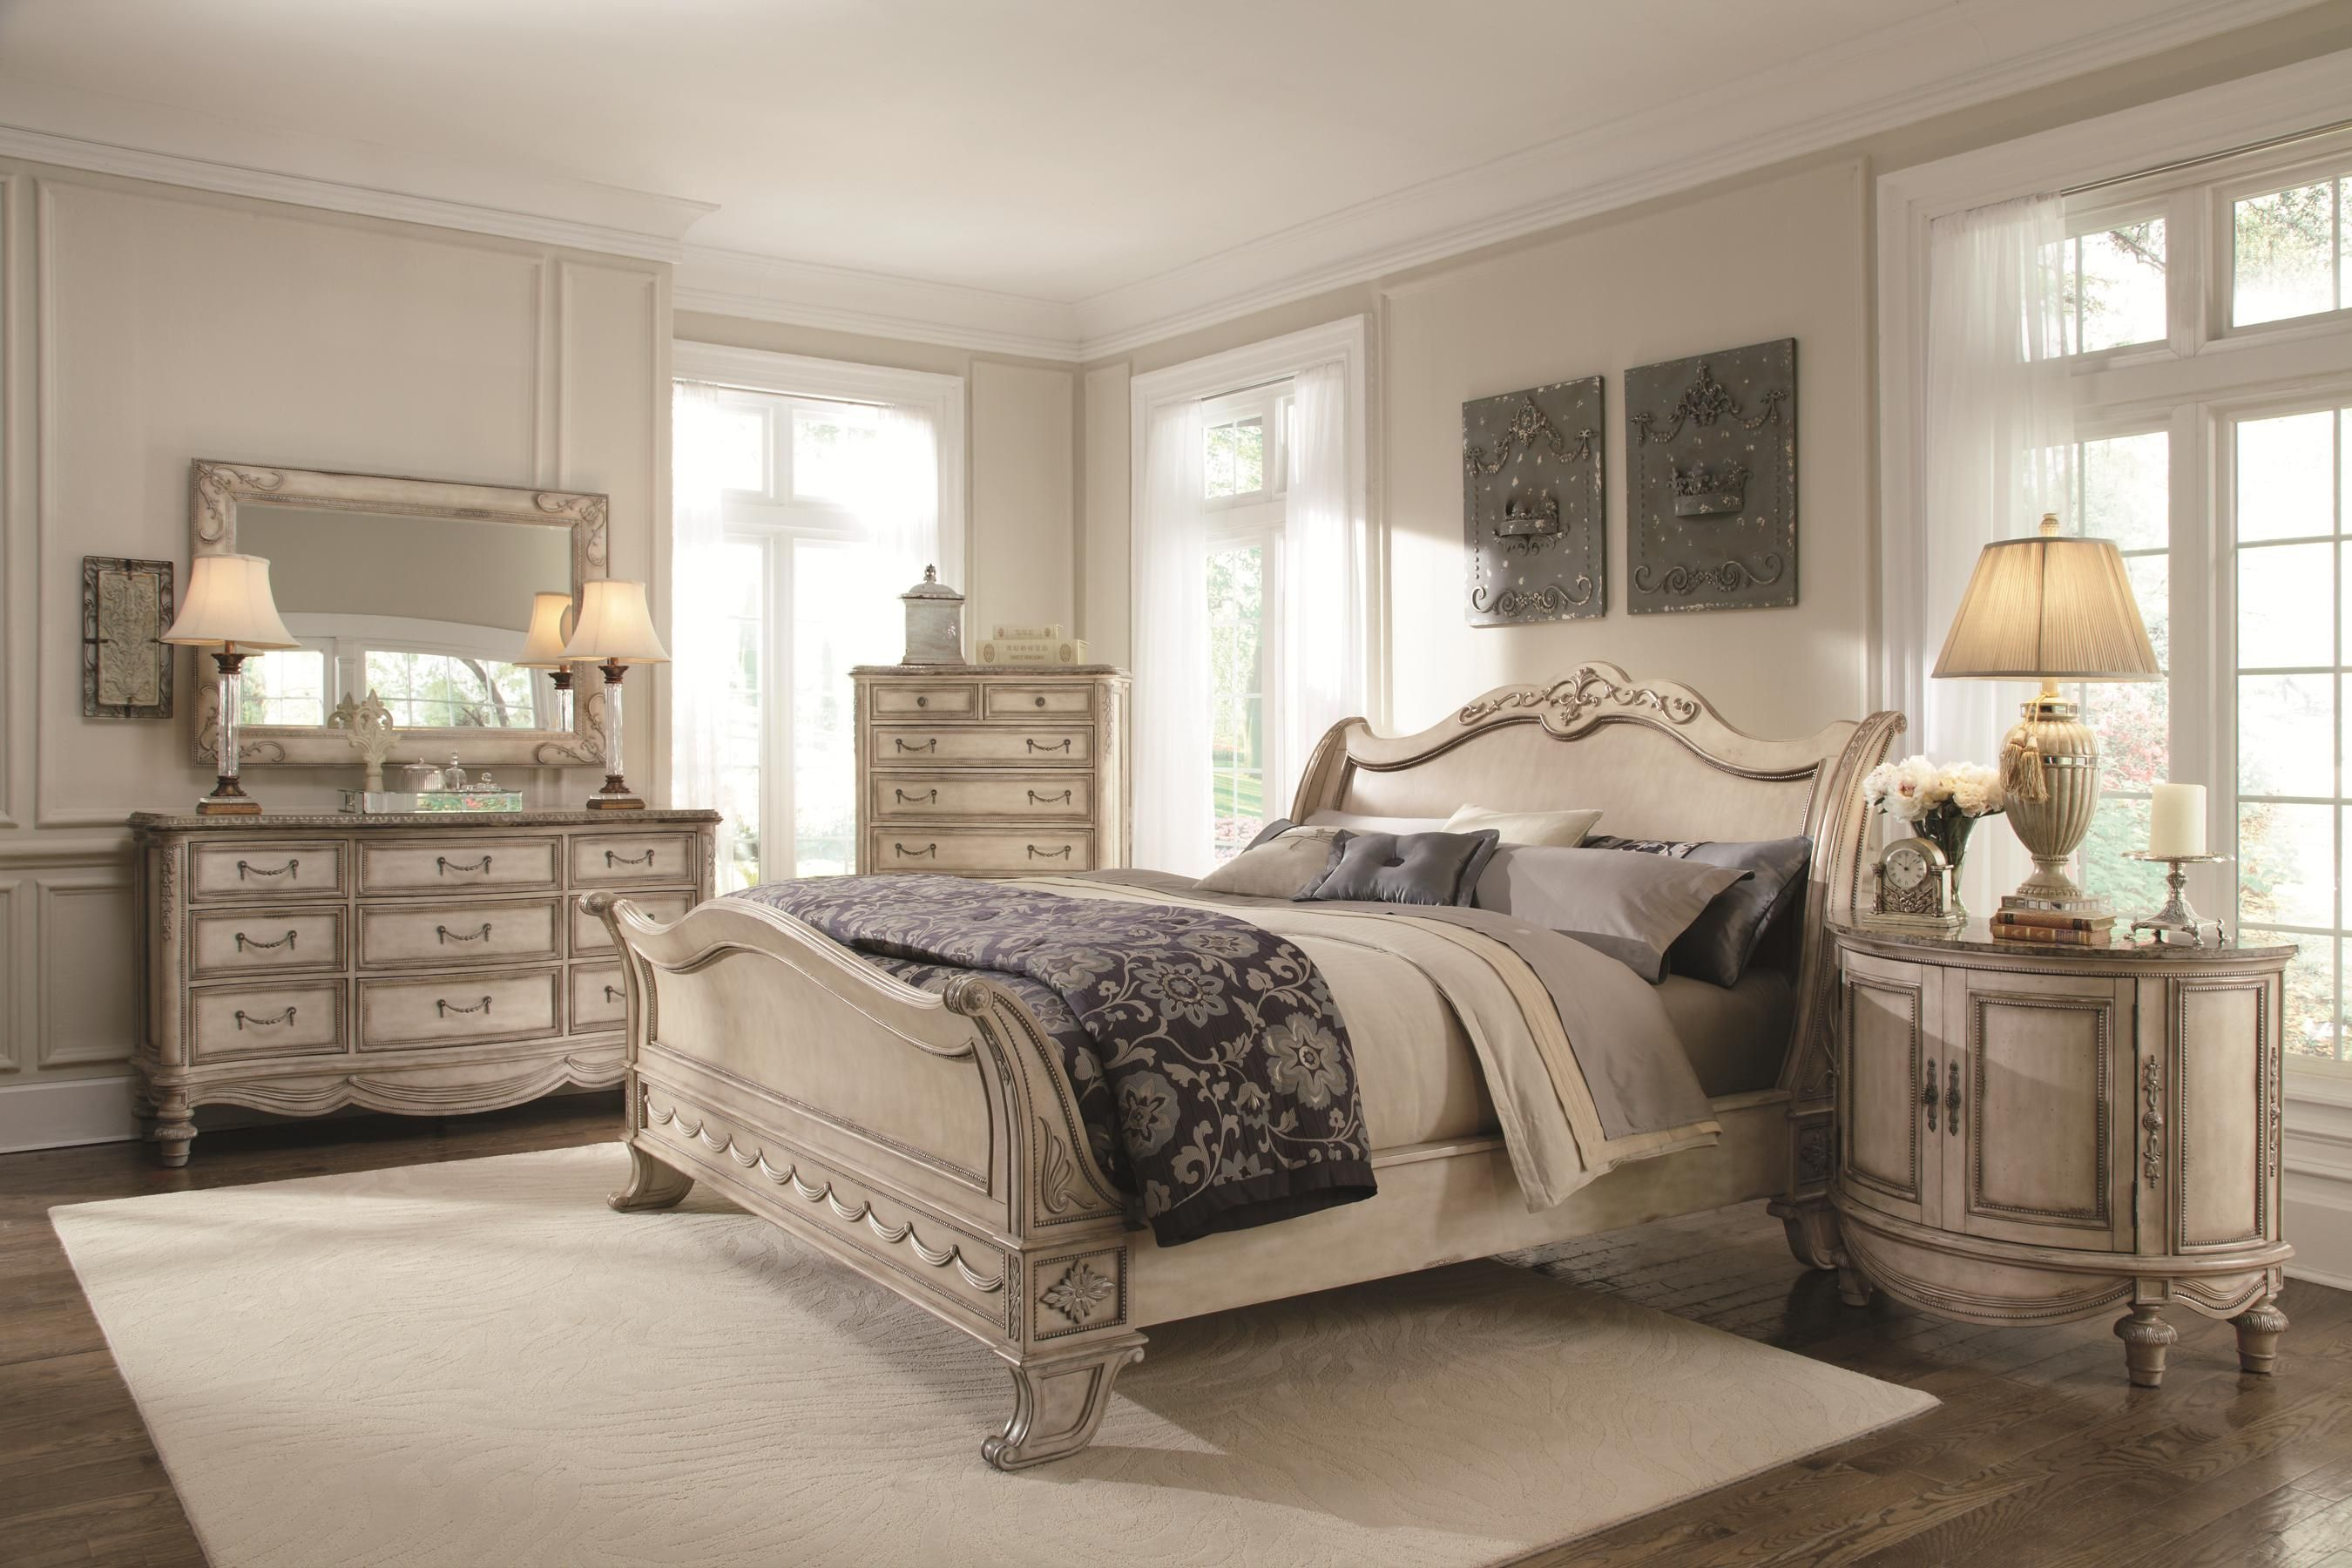 Schnadig Empire II Traditional King Sleigh Bed With Fleur De Lis Headboard  Detailing